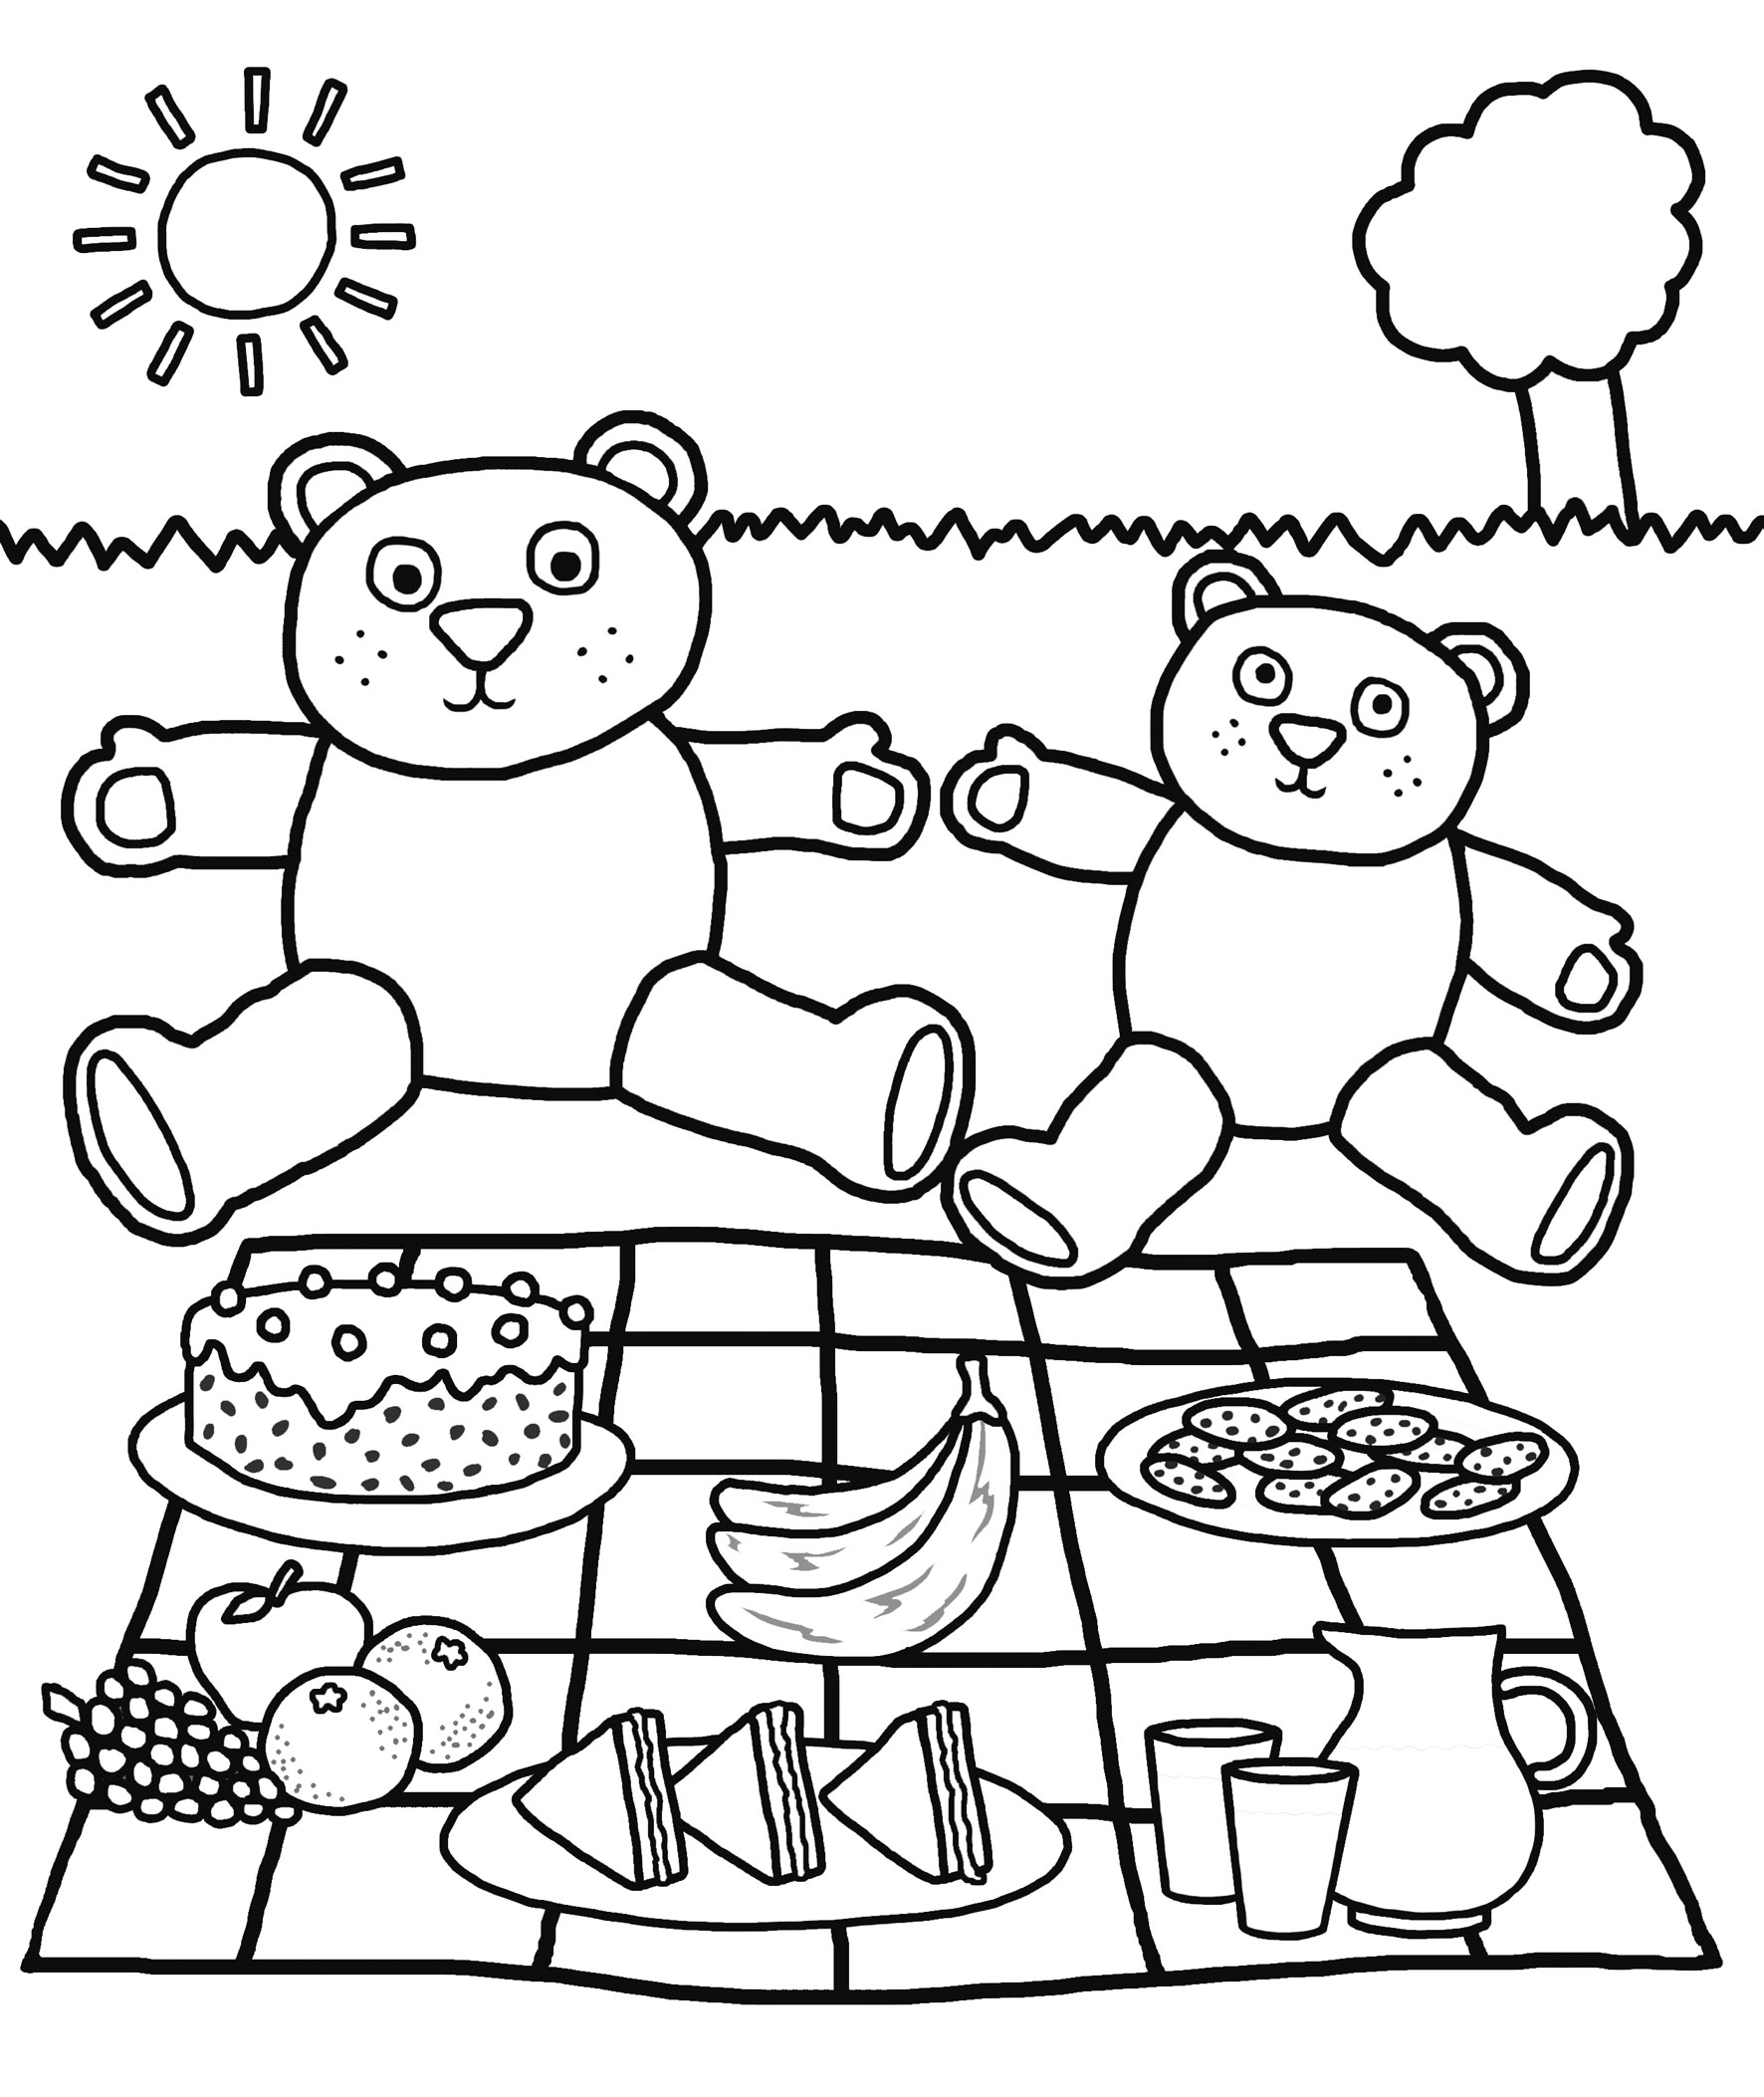 coloring pages for preschool free printable preschool coloring pages best coloring coloring for pages preschool